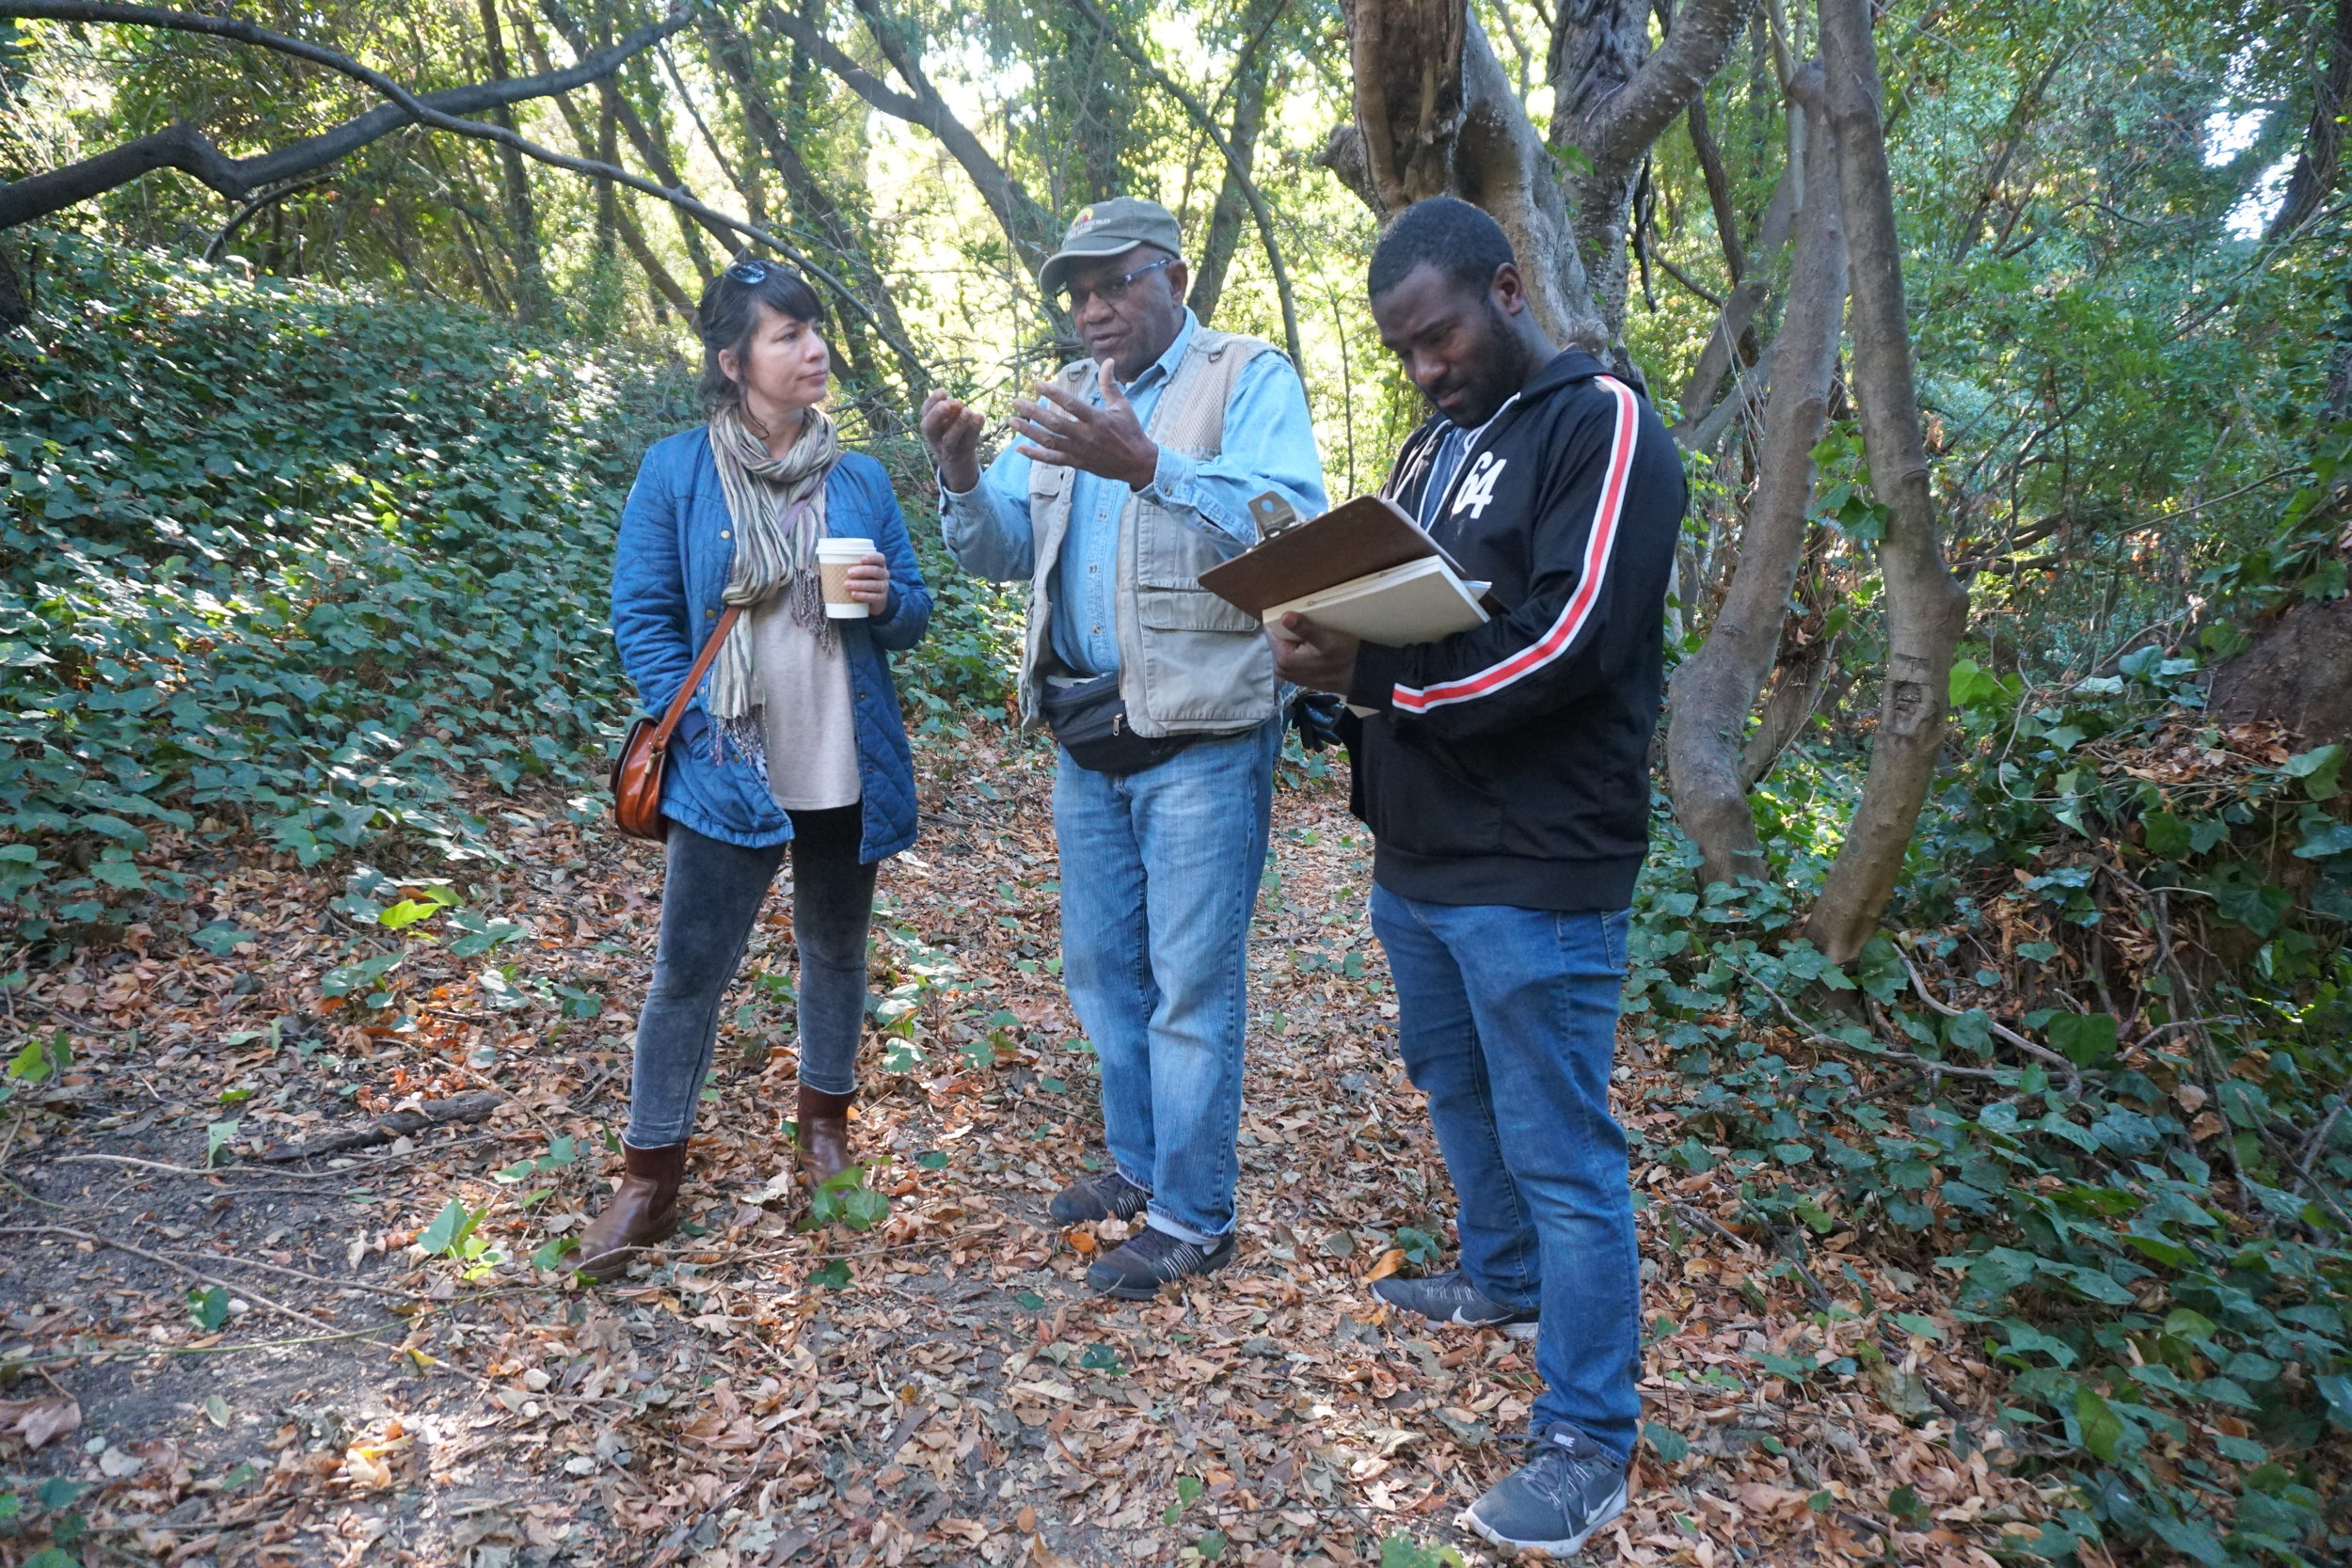 ecovillage field trip Oct 2018 Tamira Jones , Shyaam Shabaka, Peterson.JPG